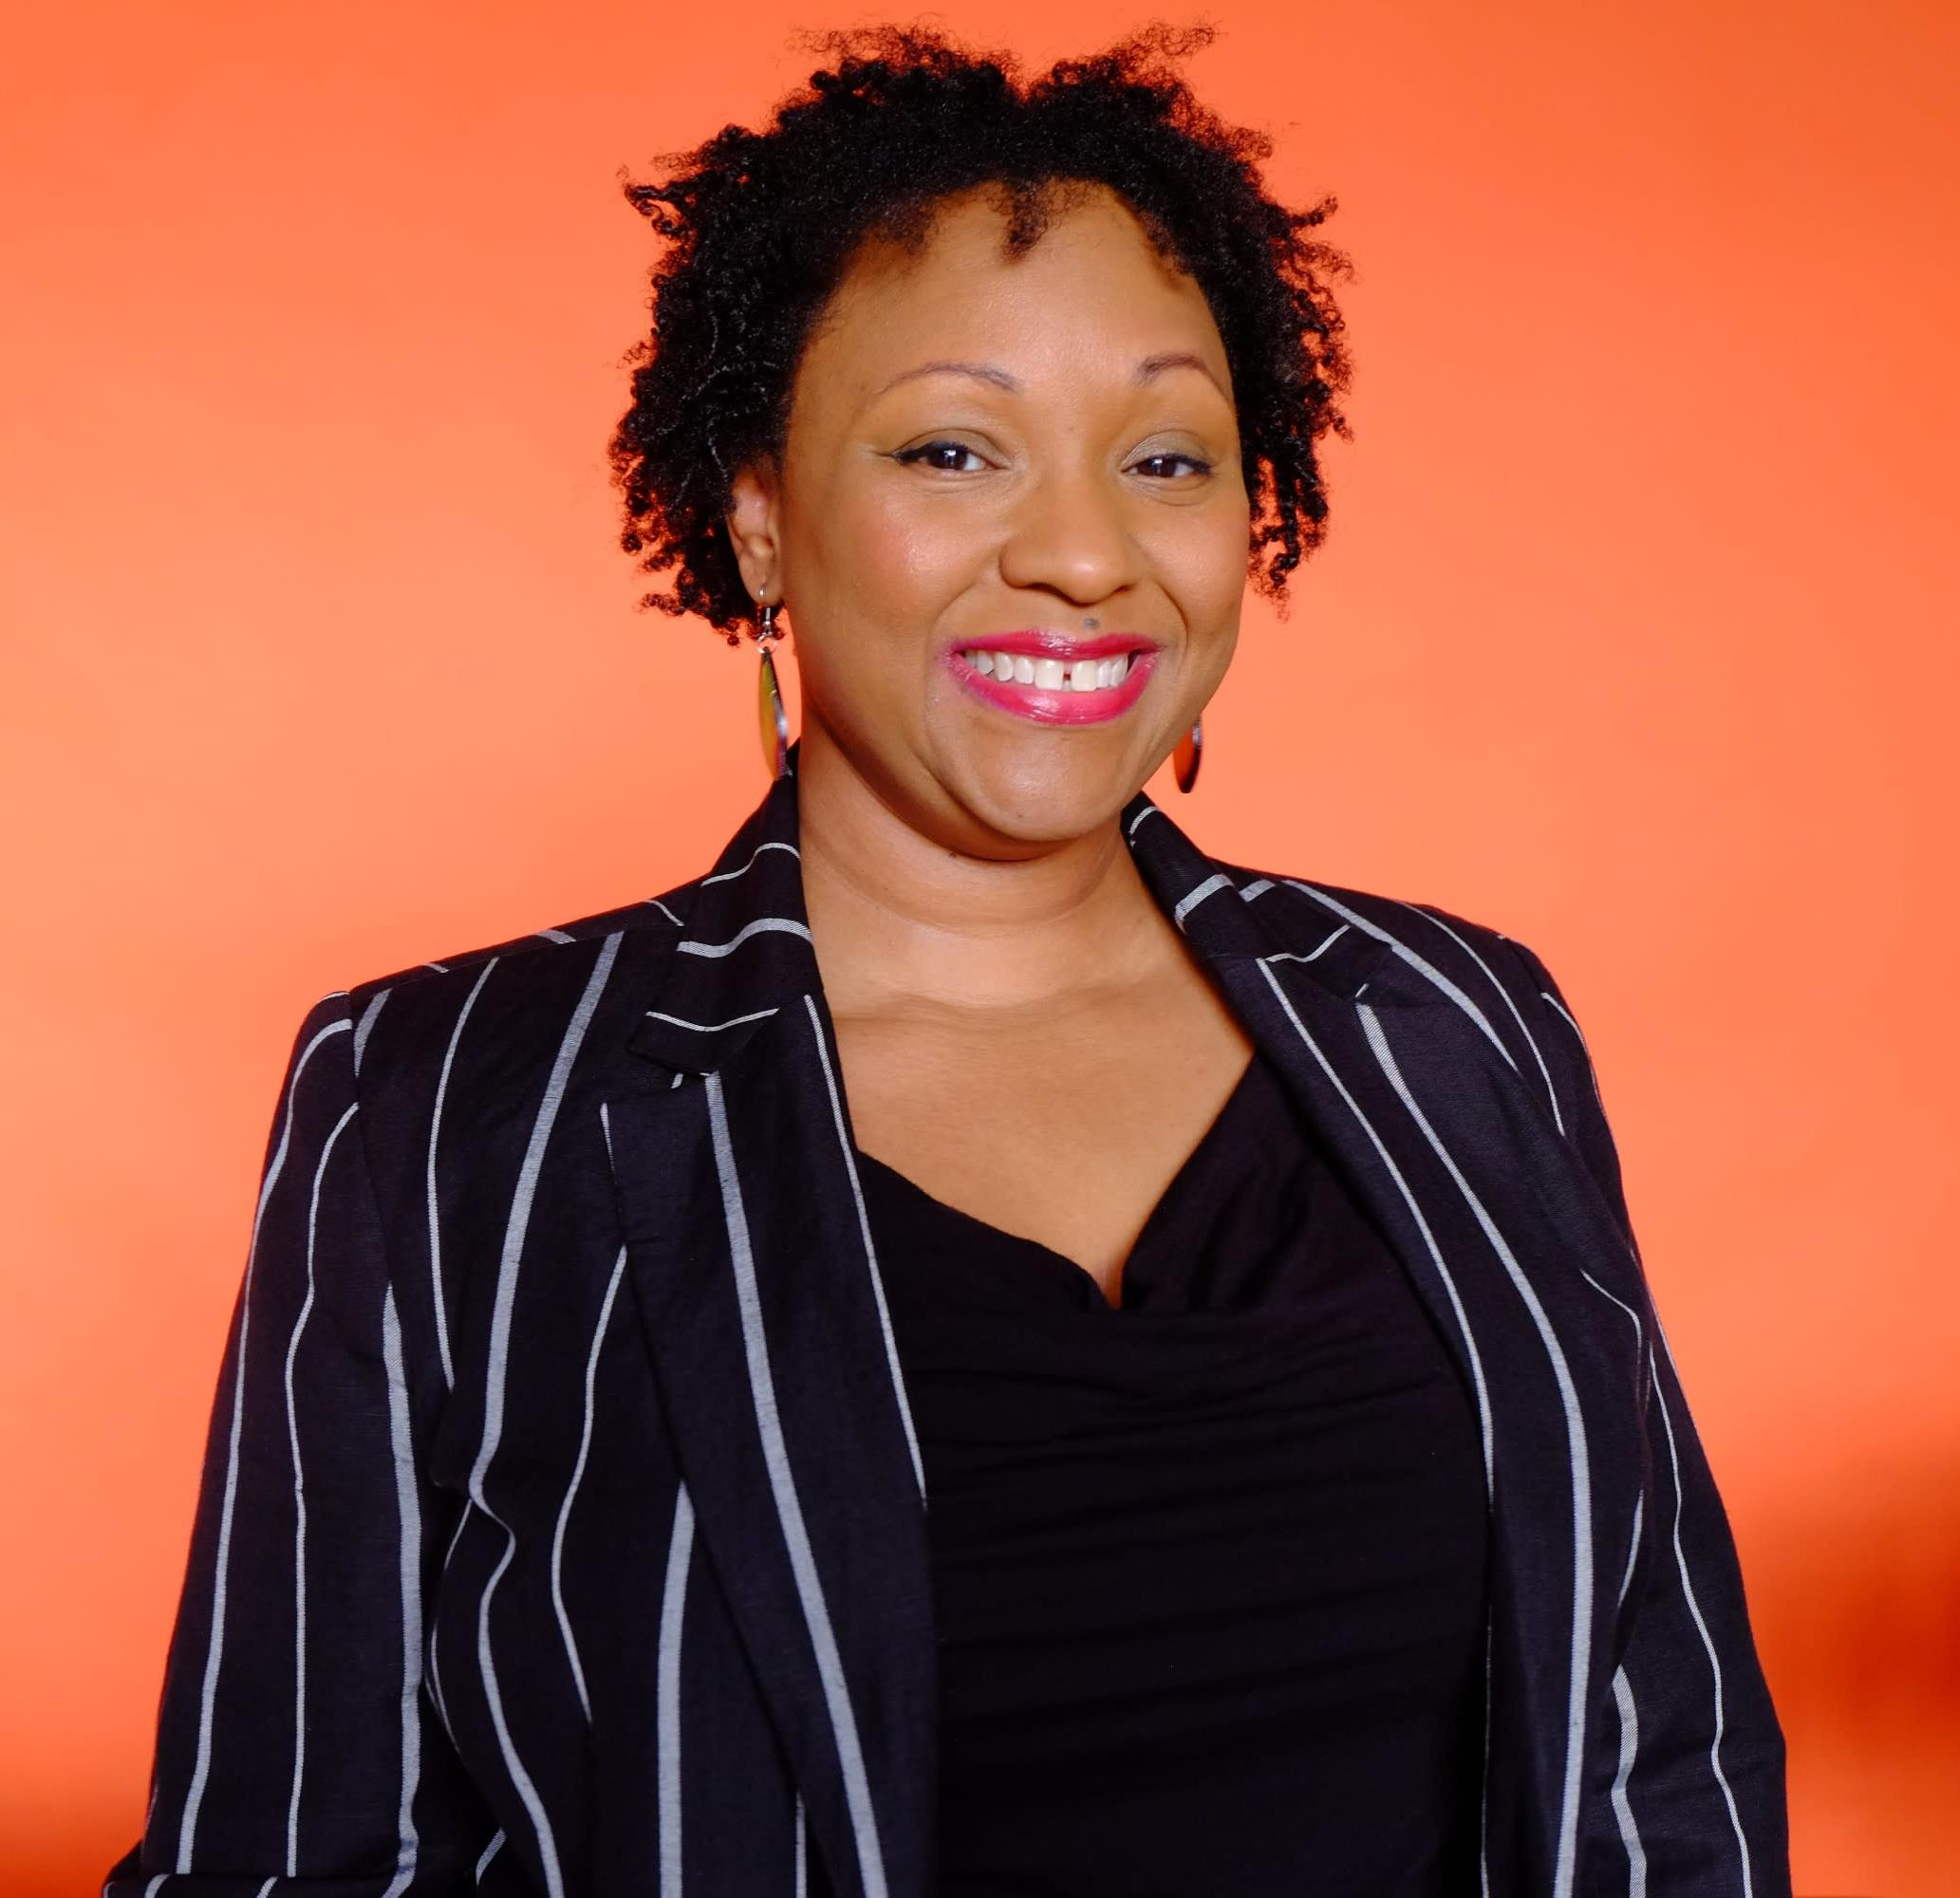 Joyous black female in a black shirt with a black and white striped blazer smiling in front of an orange background